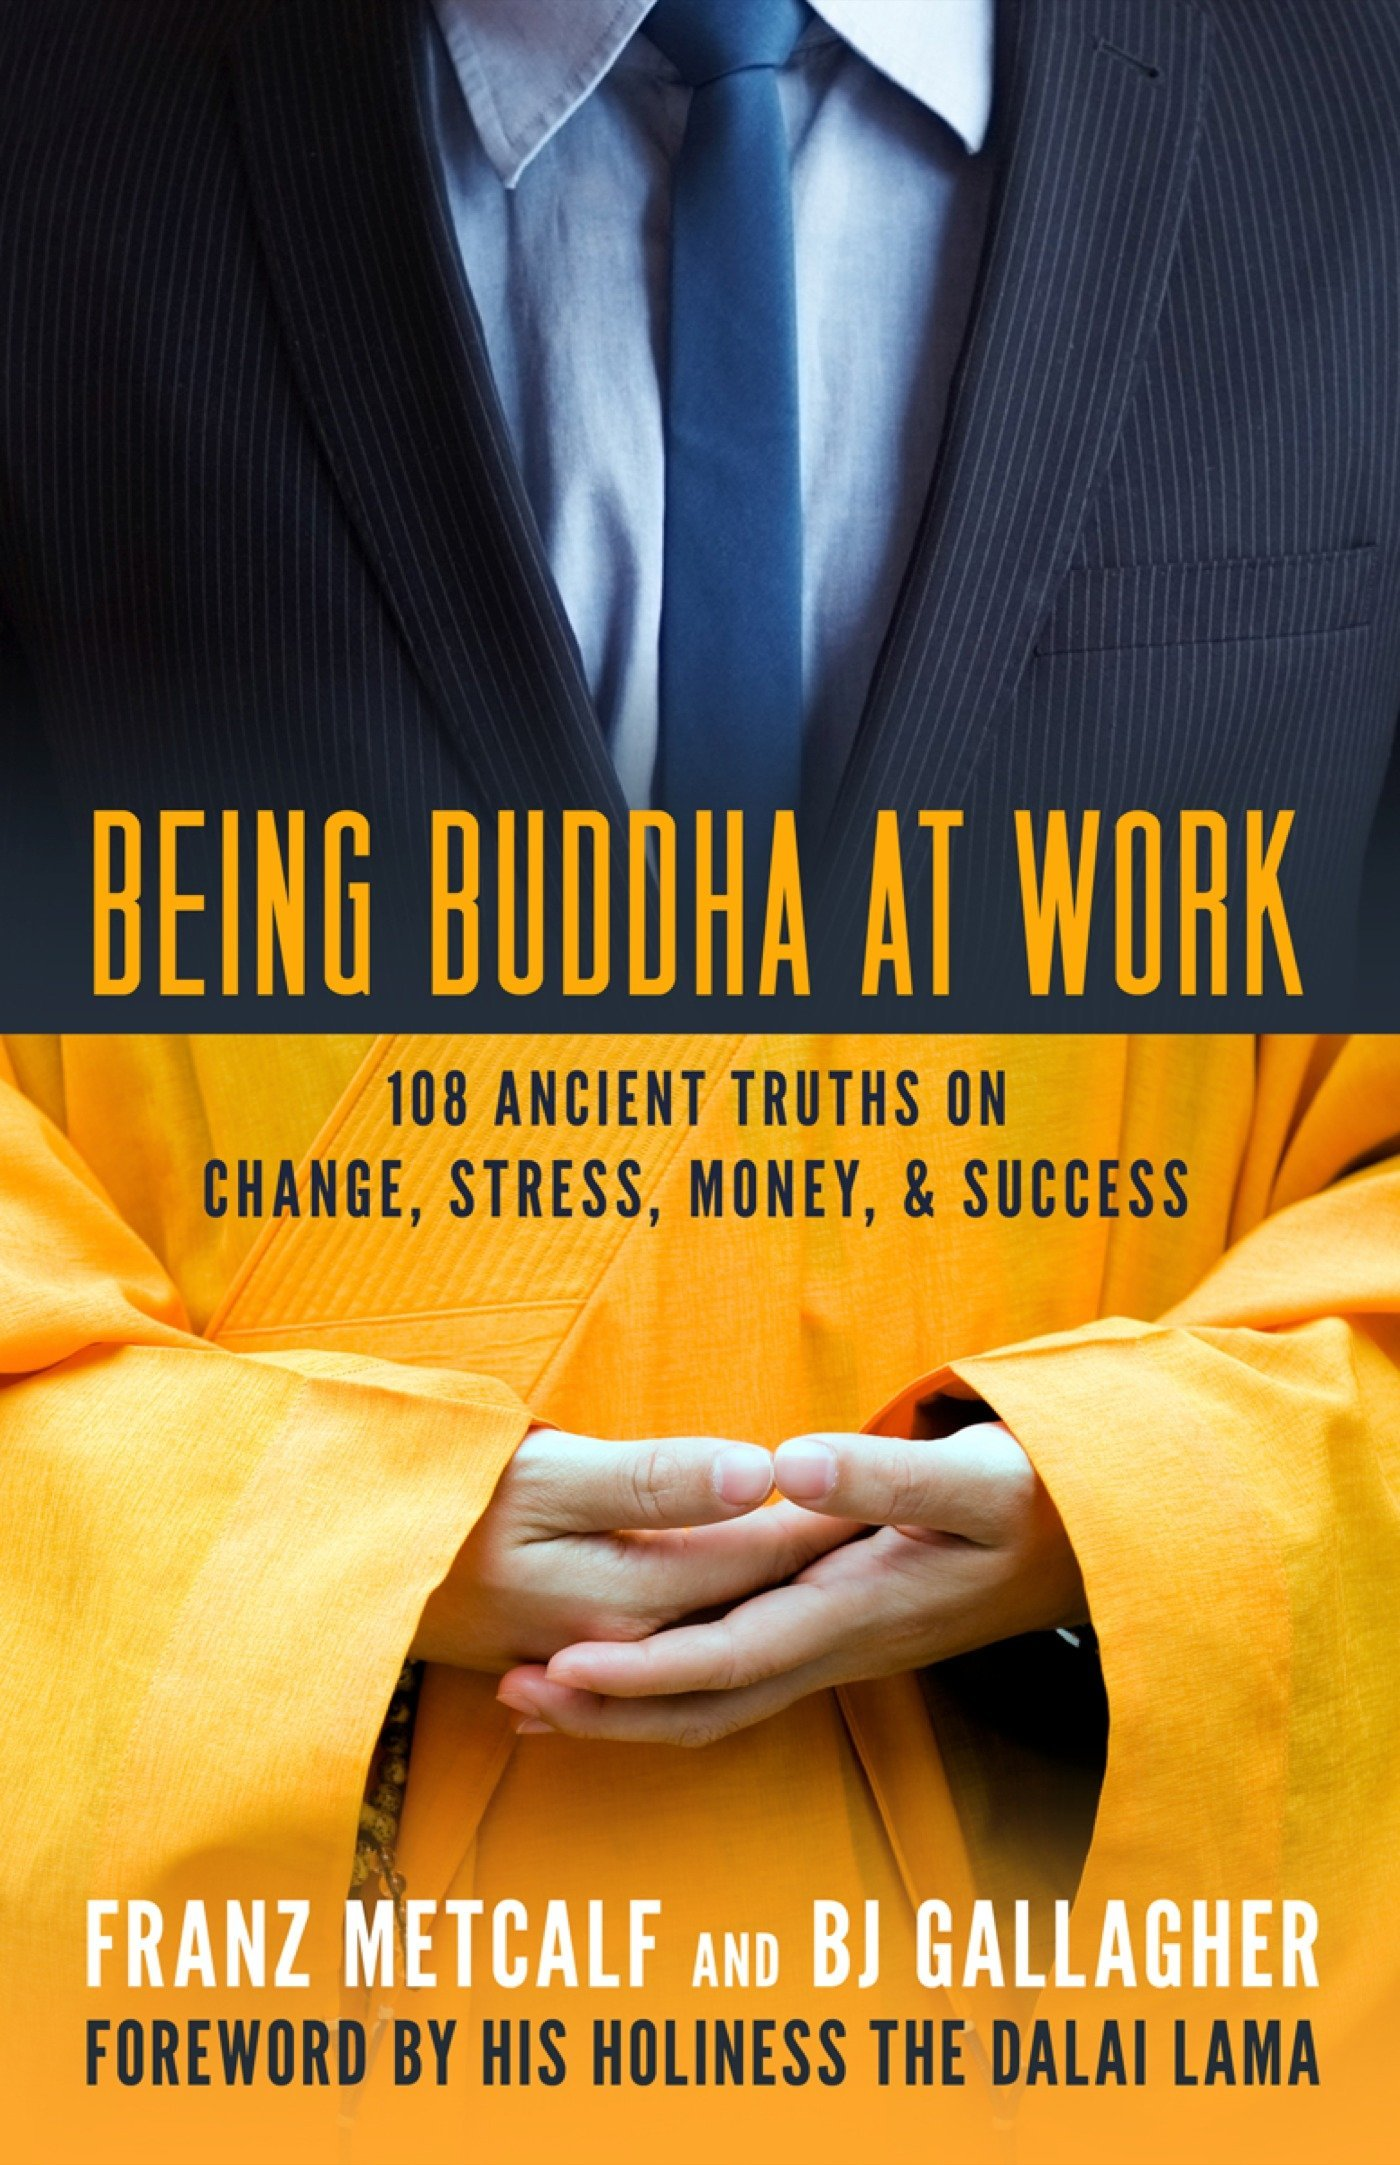 Being Buddha at Work: 108 Ancient Truths on Change, Stress, Money, and Success